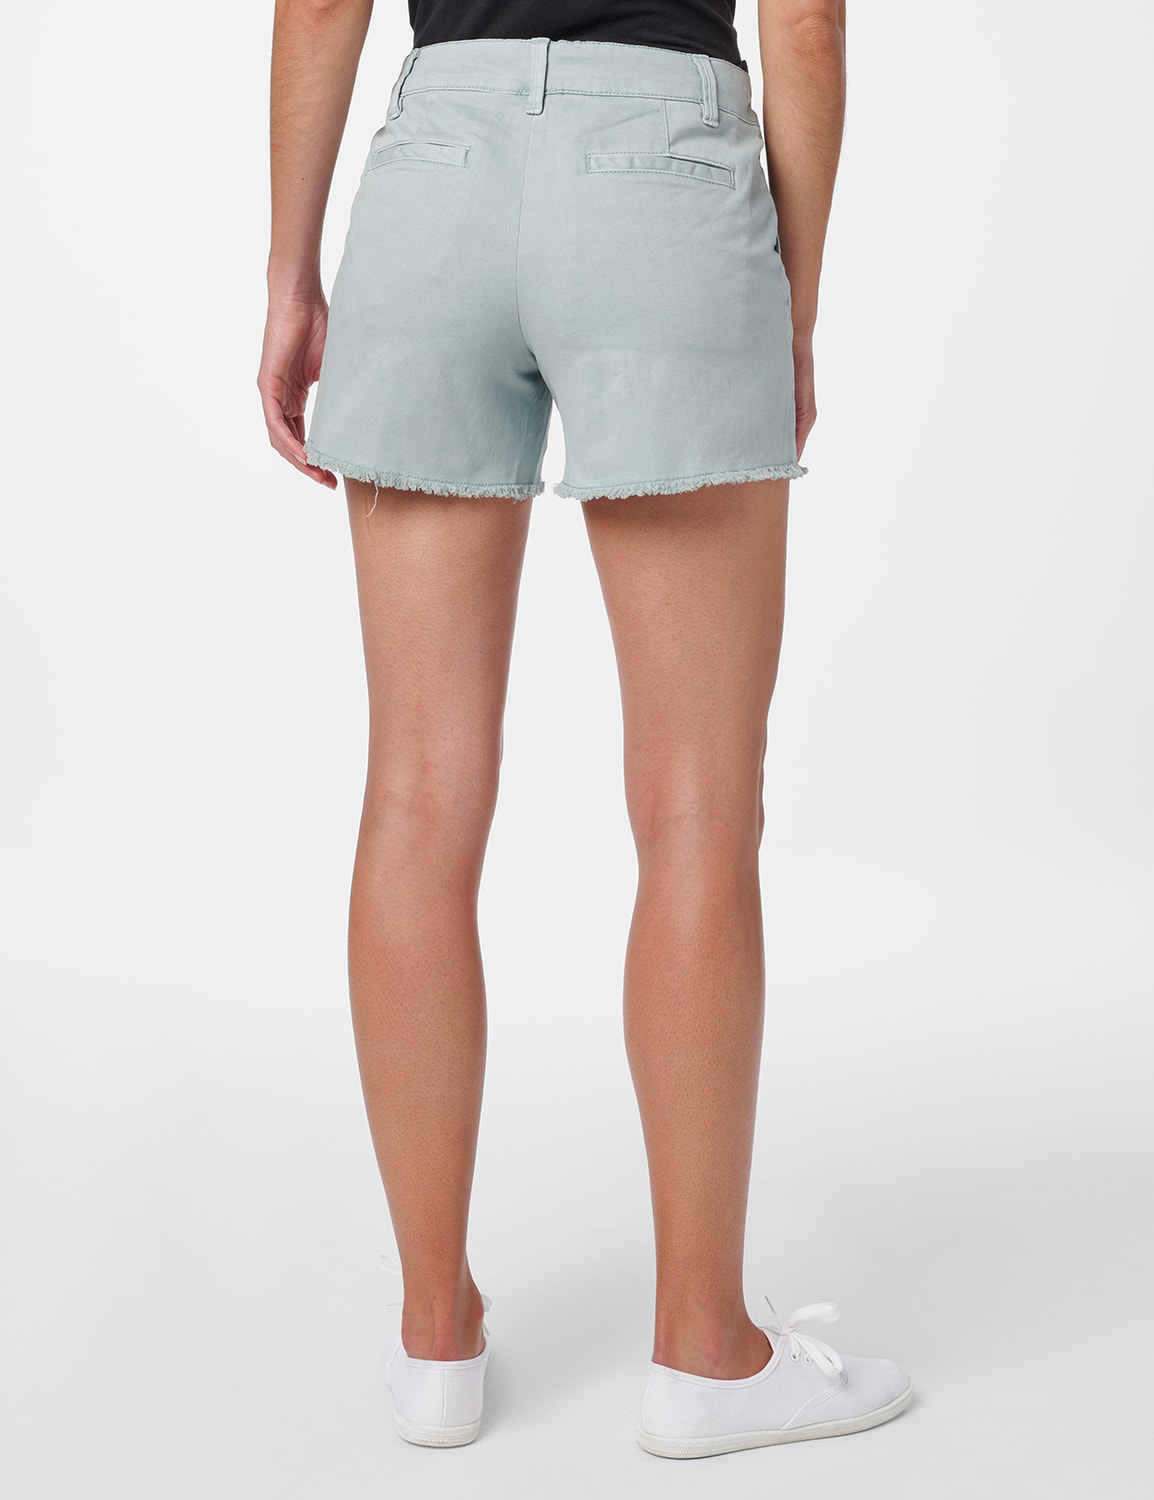 Fly Front Slash Pocket Short with Fray Hem - Aqua Mint - Back